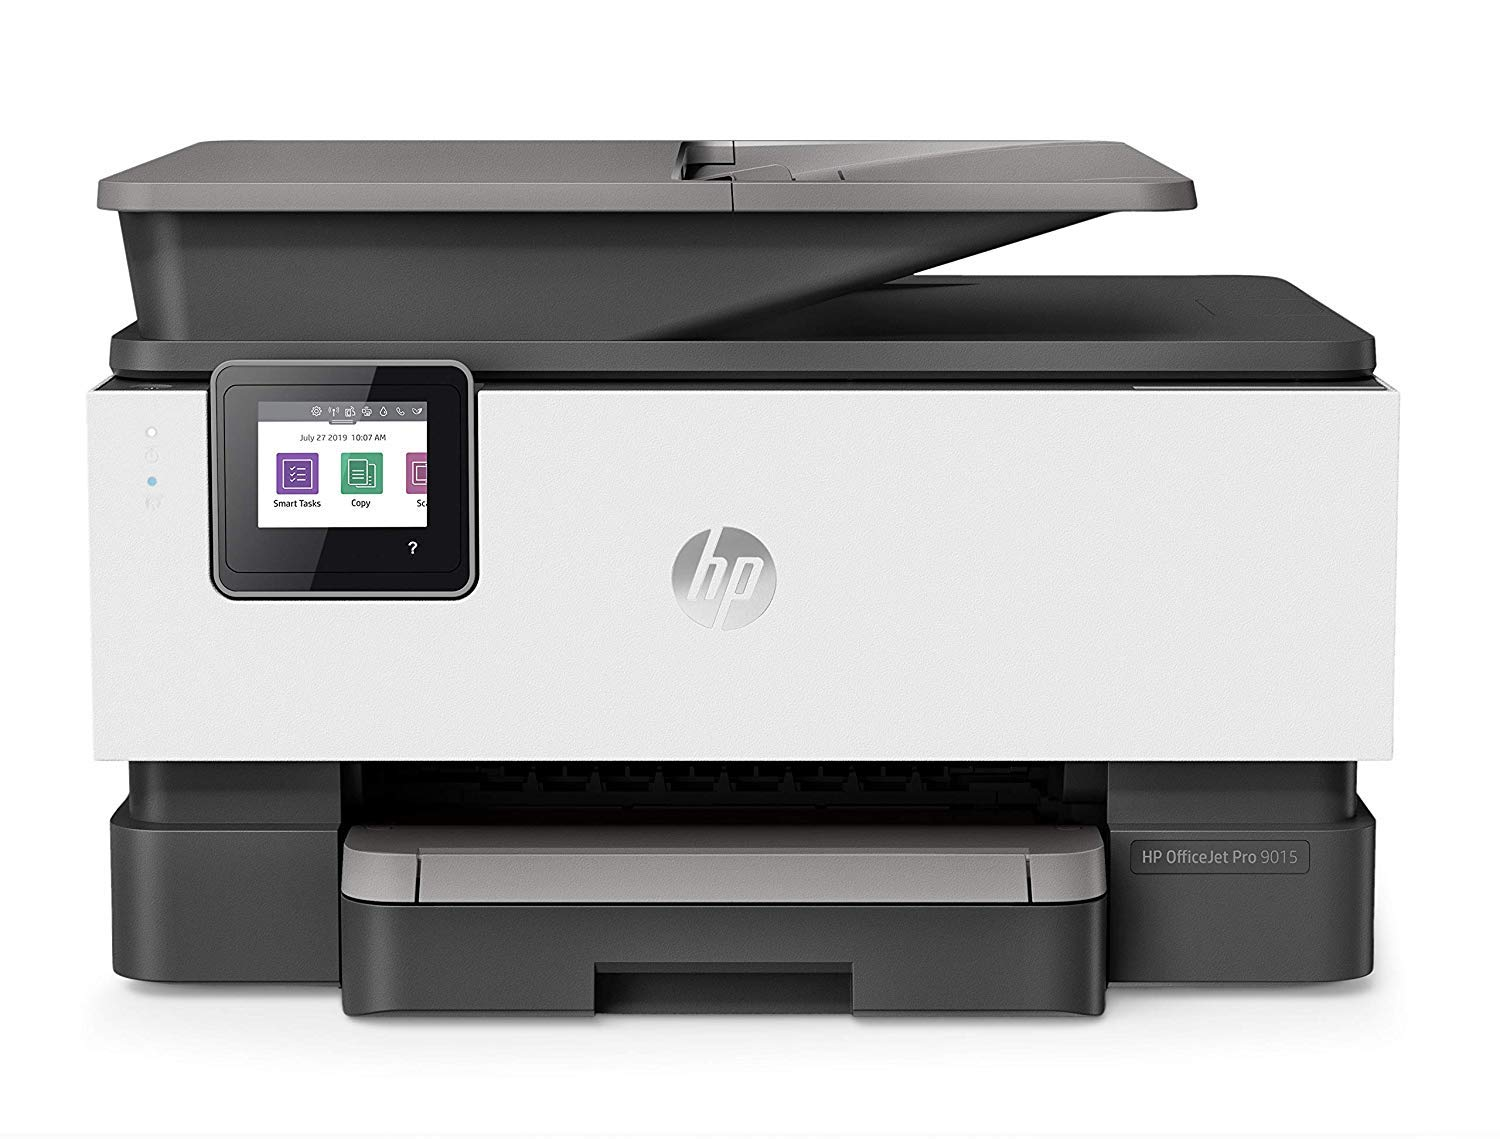 Amazon.com: HP OfficeJet Pro Impresora inalámbrica todo en ...